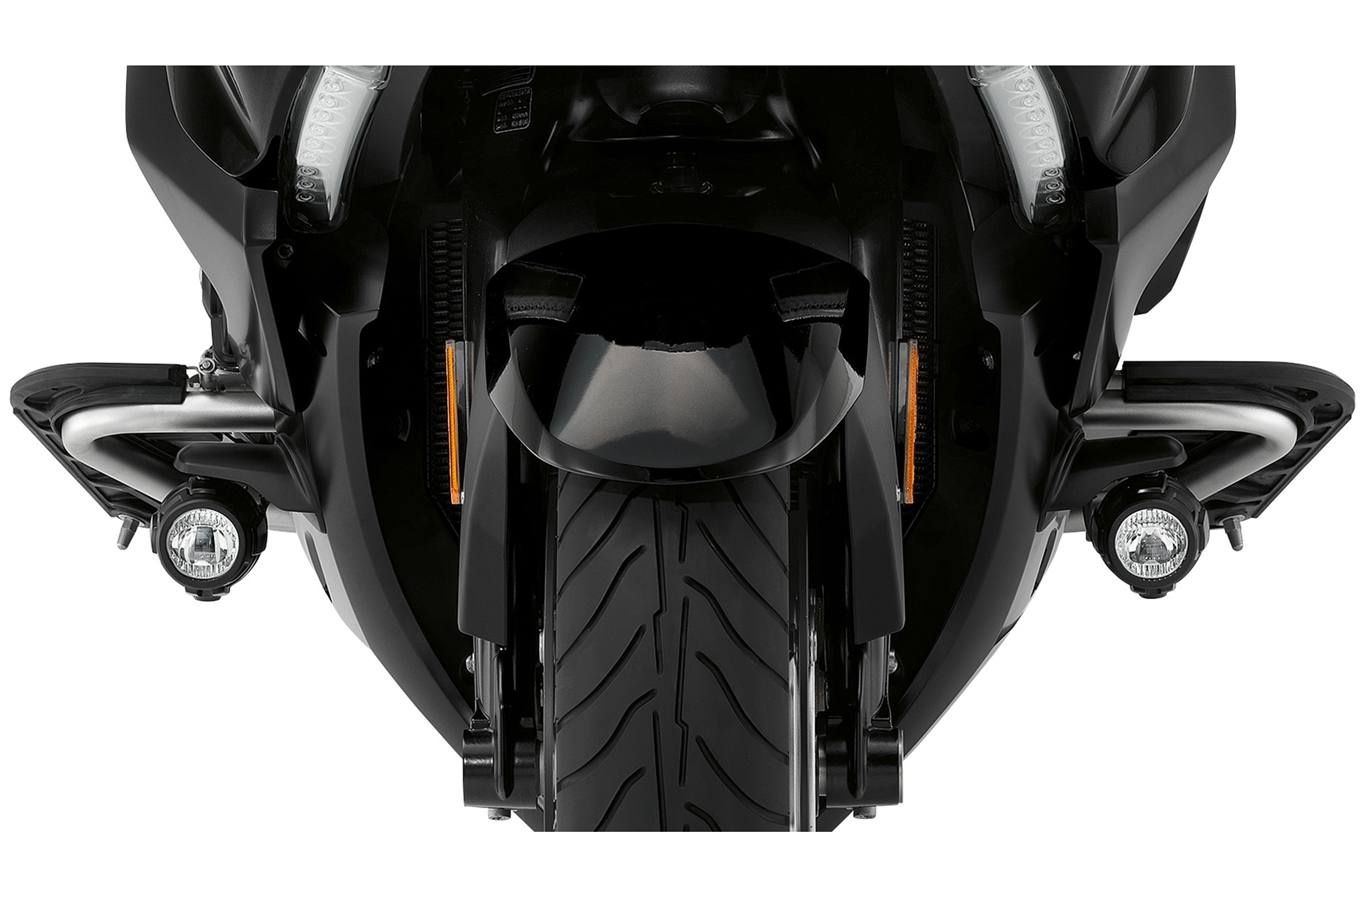 2019 BMW K 1600 Grand America for sale in Fort Myers, FL